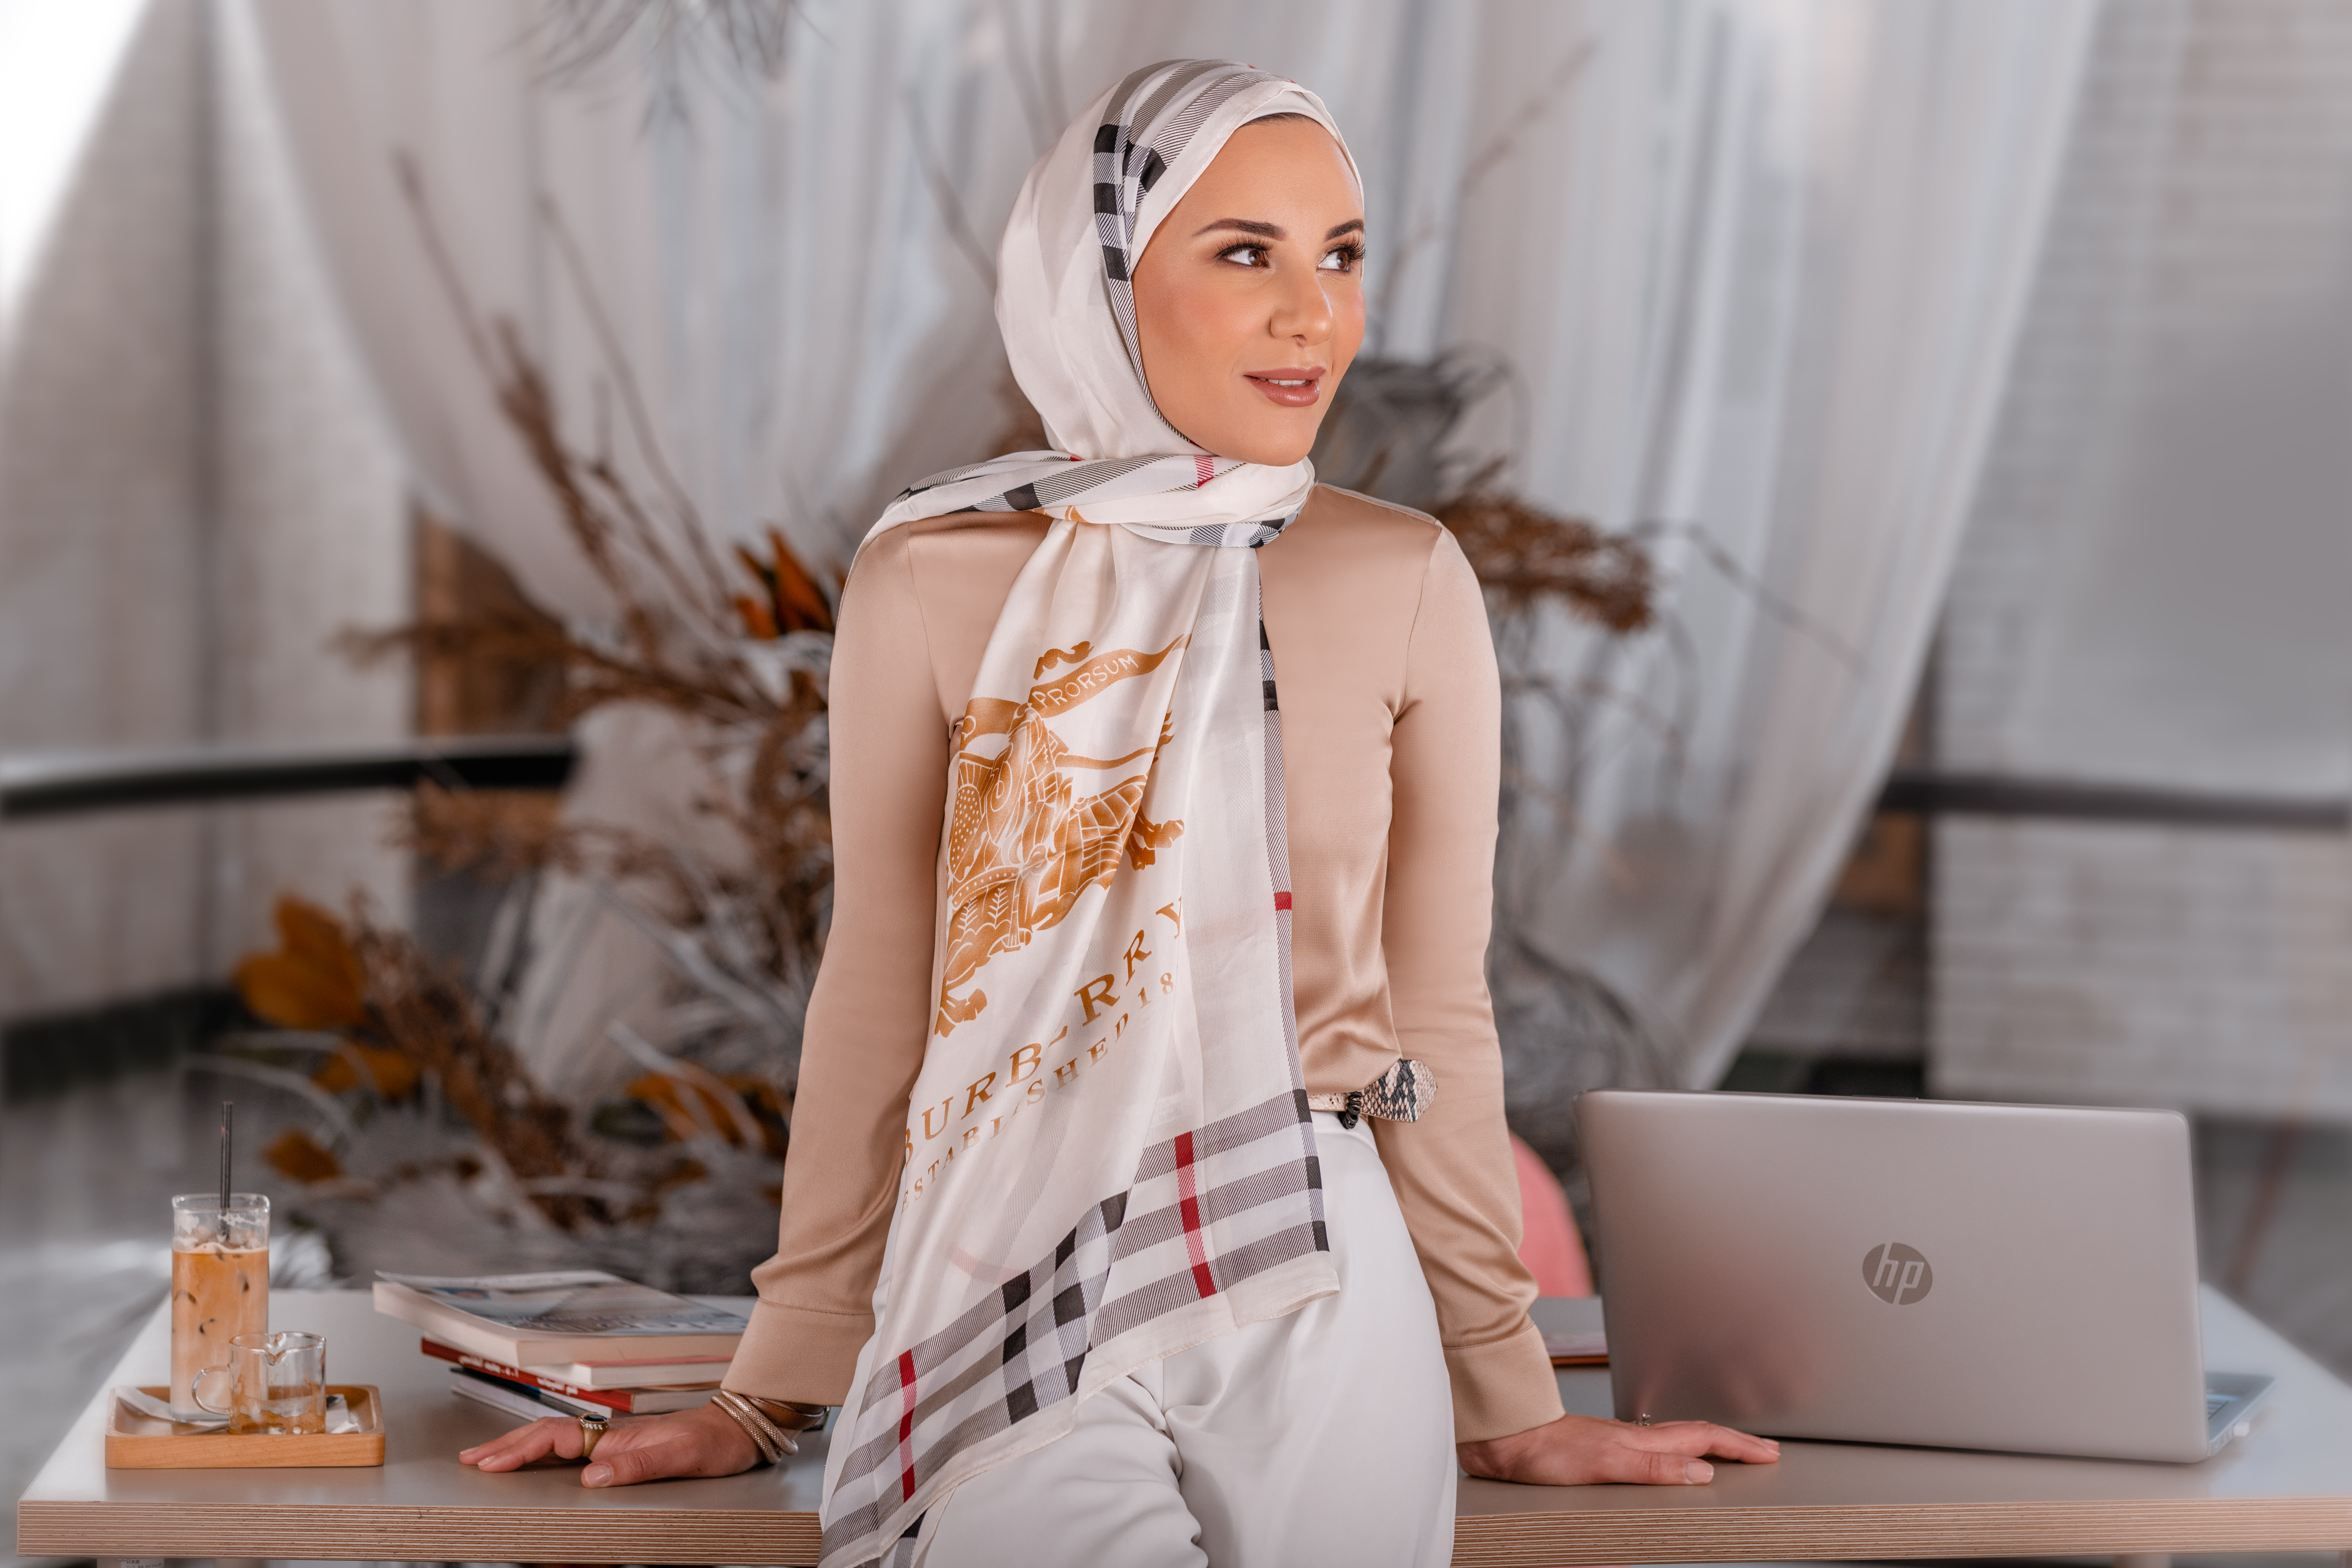 Muslim moms struggle to find a home in mainstream wellness community.